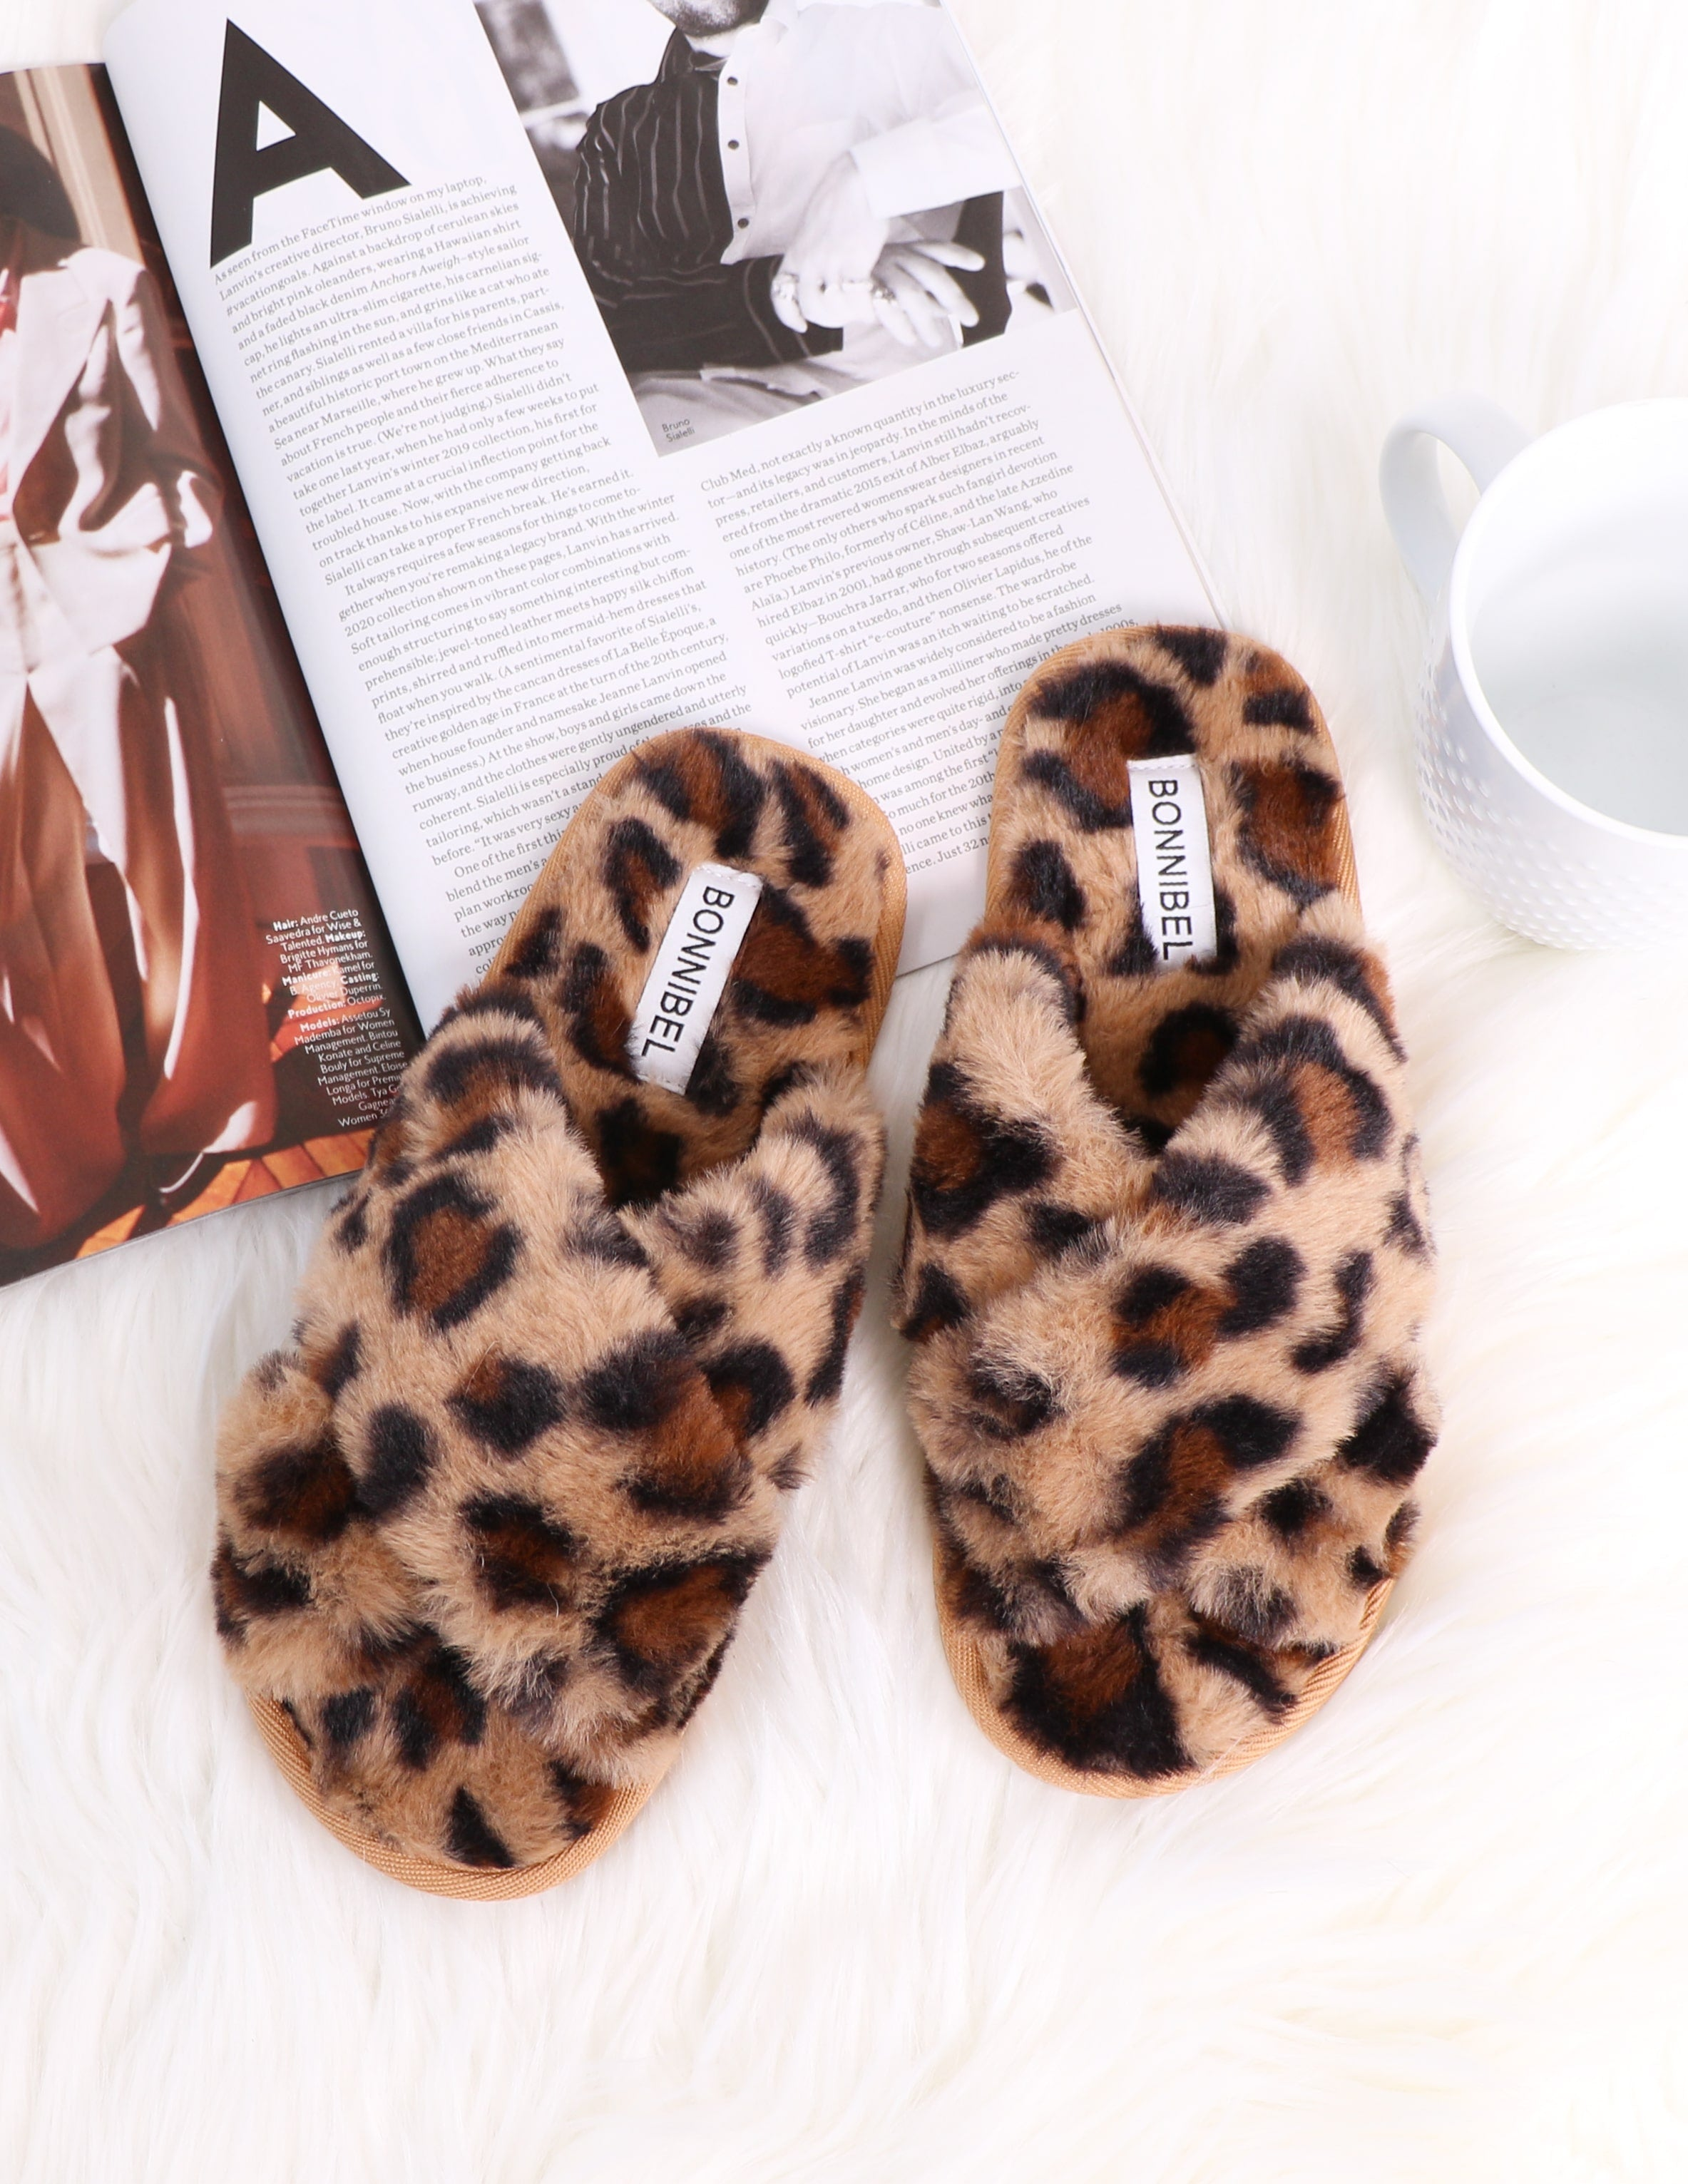 Leopard fur the dreamers slipper on white fur rug - elle bleu